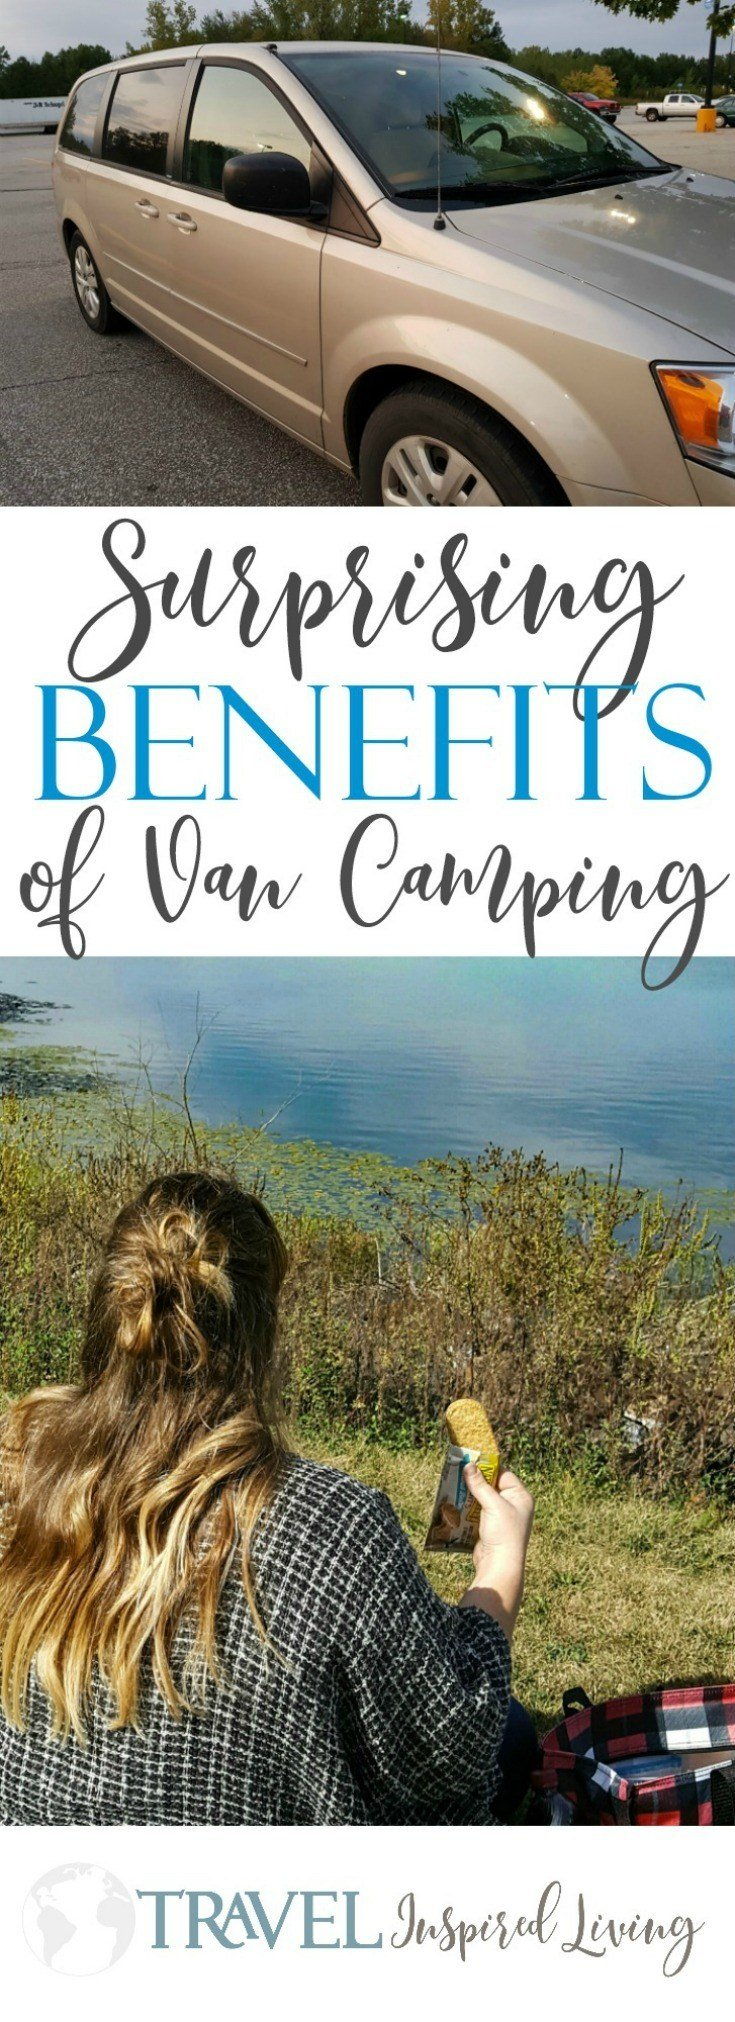 Surprising Benefits of Van Camping